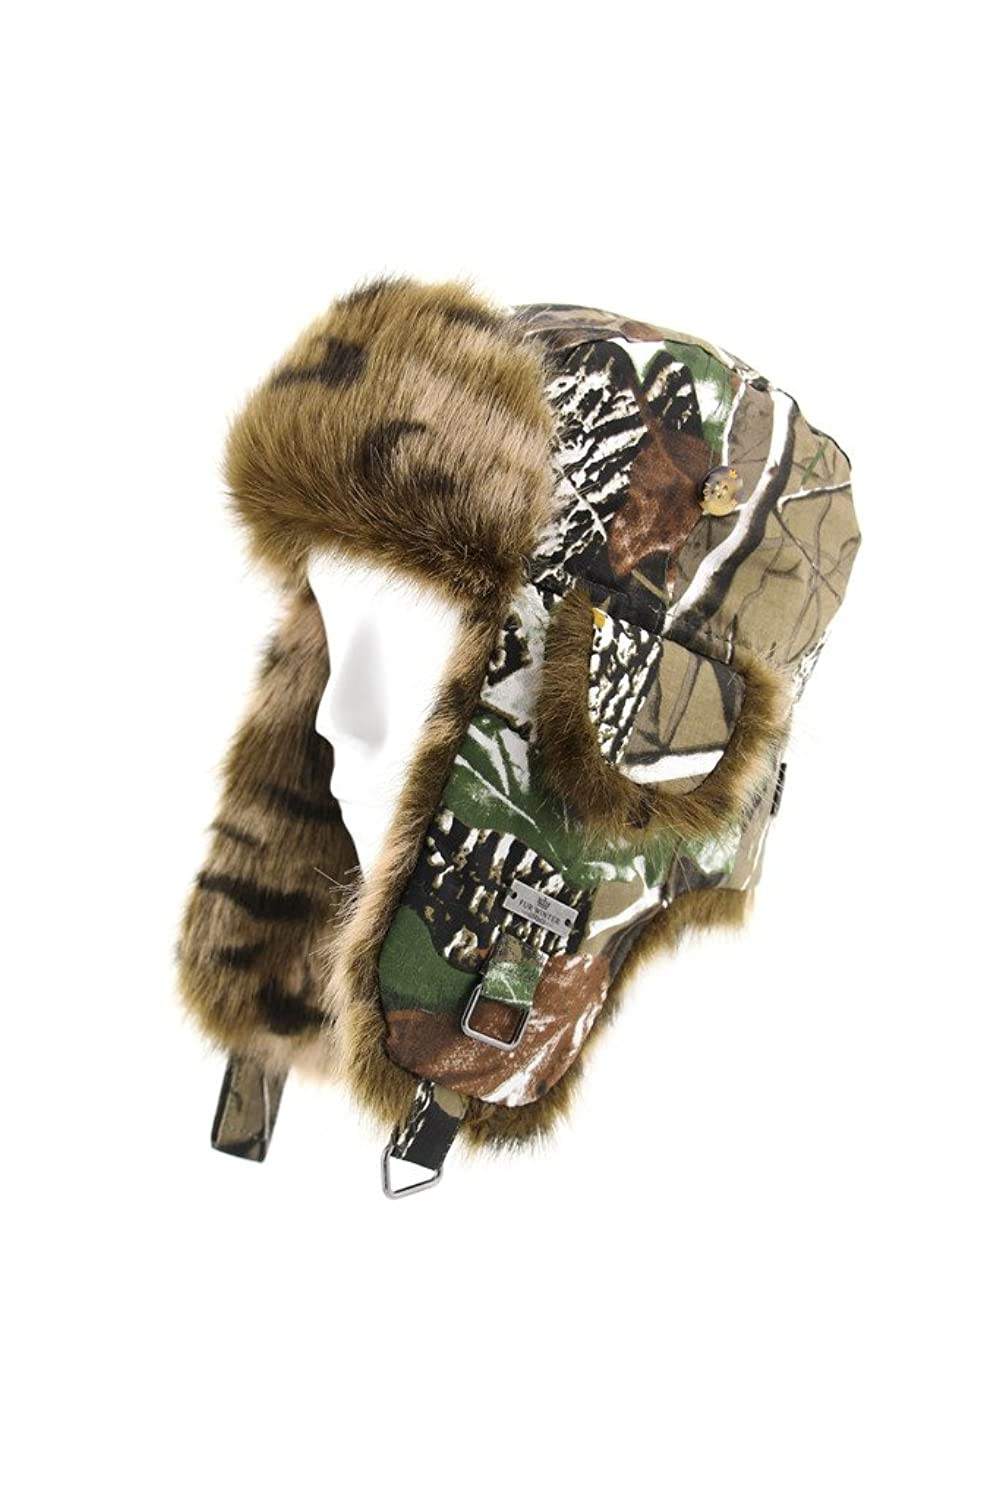 Fell Winter Baumwolle Camouflage Camo Webpelz Bomber Trapper Trooper Snowboard Pilot Ski Jagd Hat